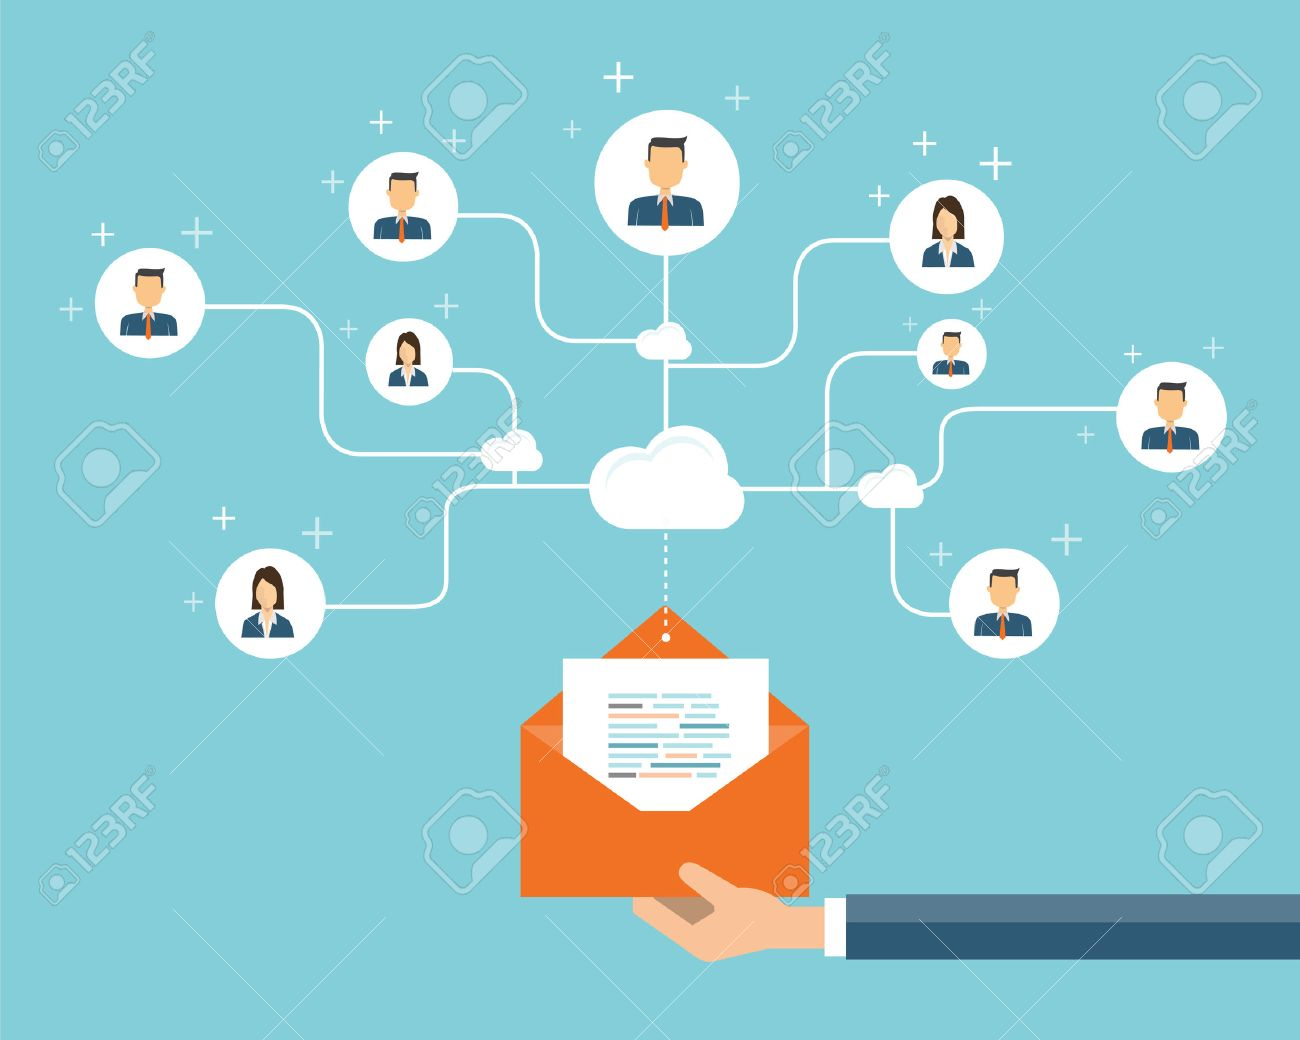 Email background image - Vector Business Email Marketing Connection On People Background Social Network And Business Connection